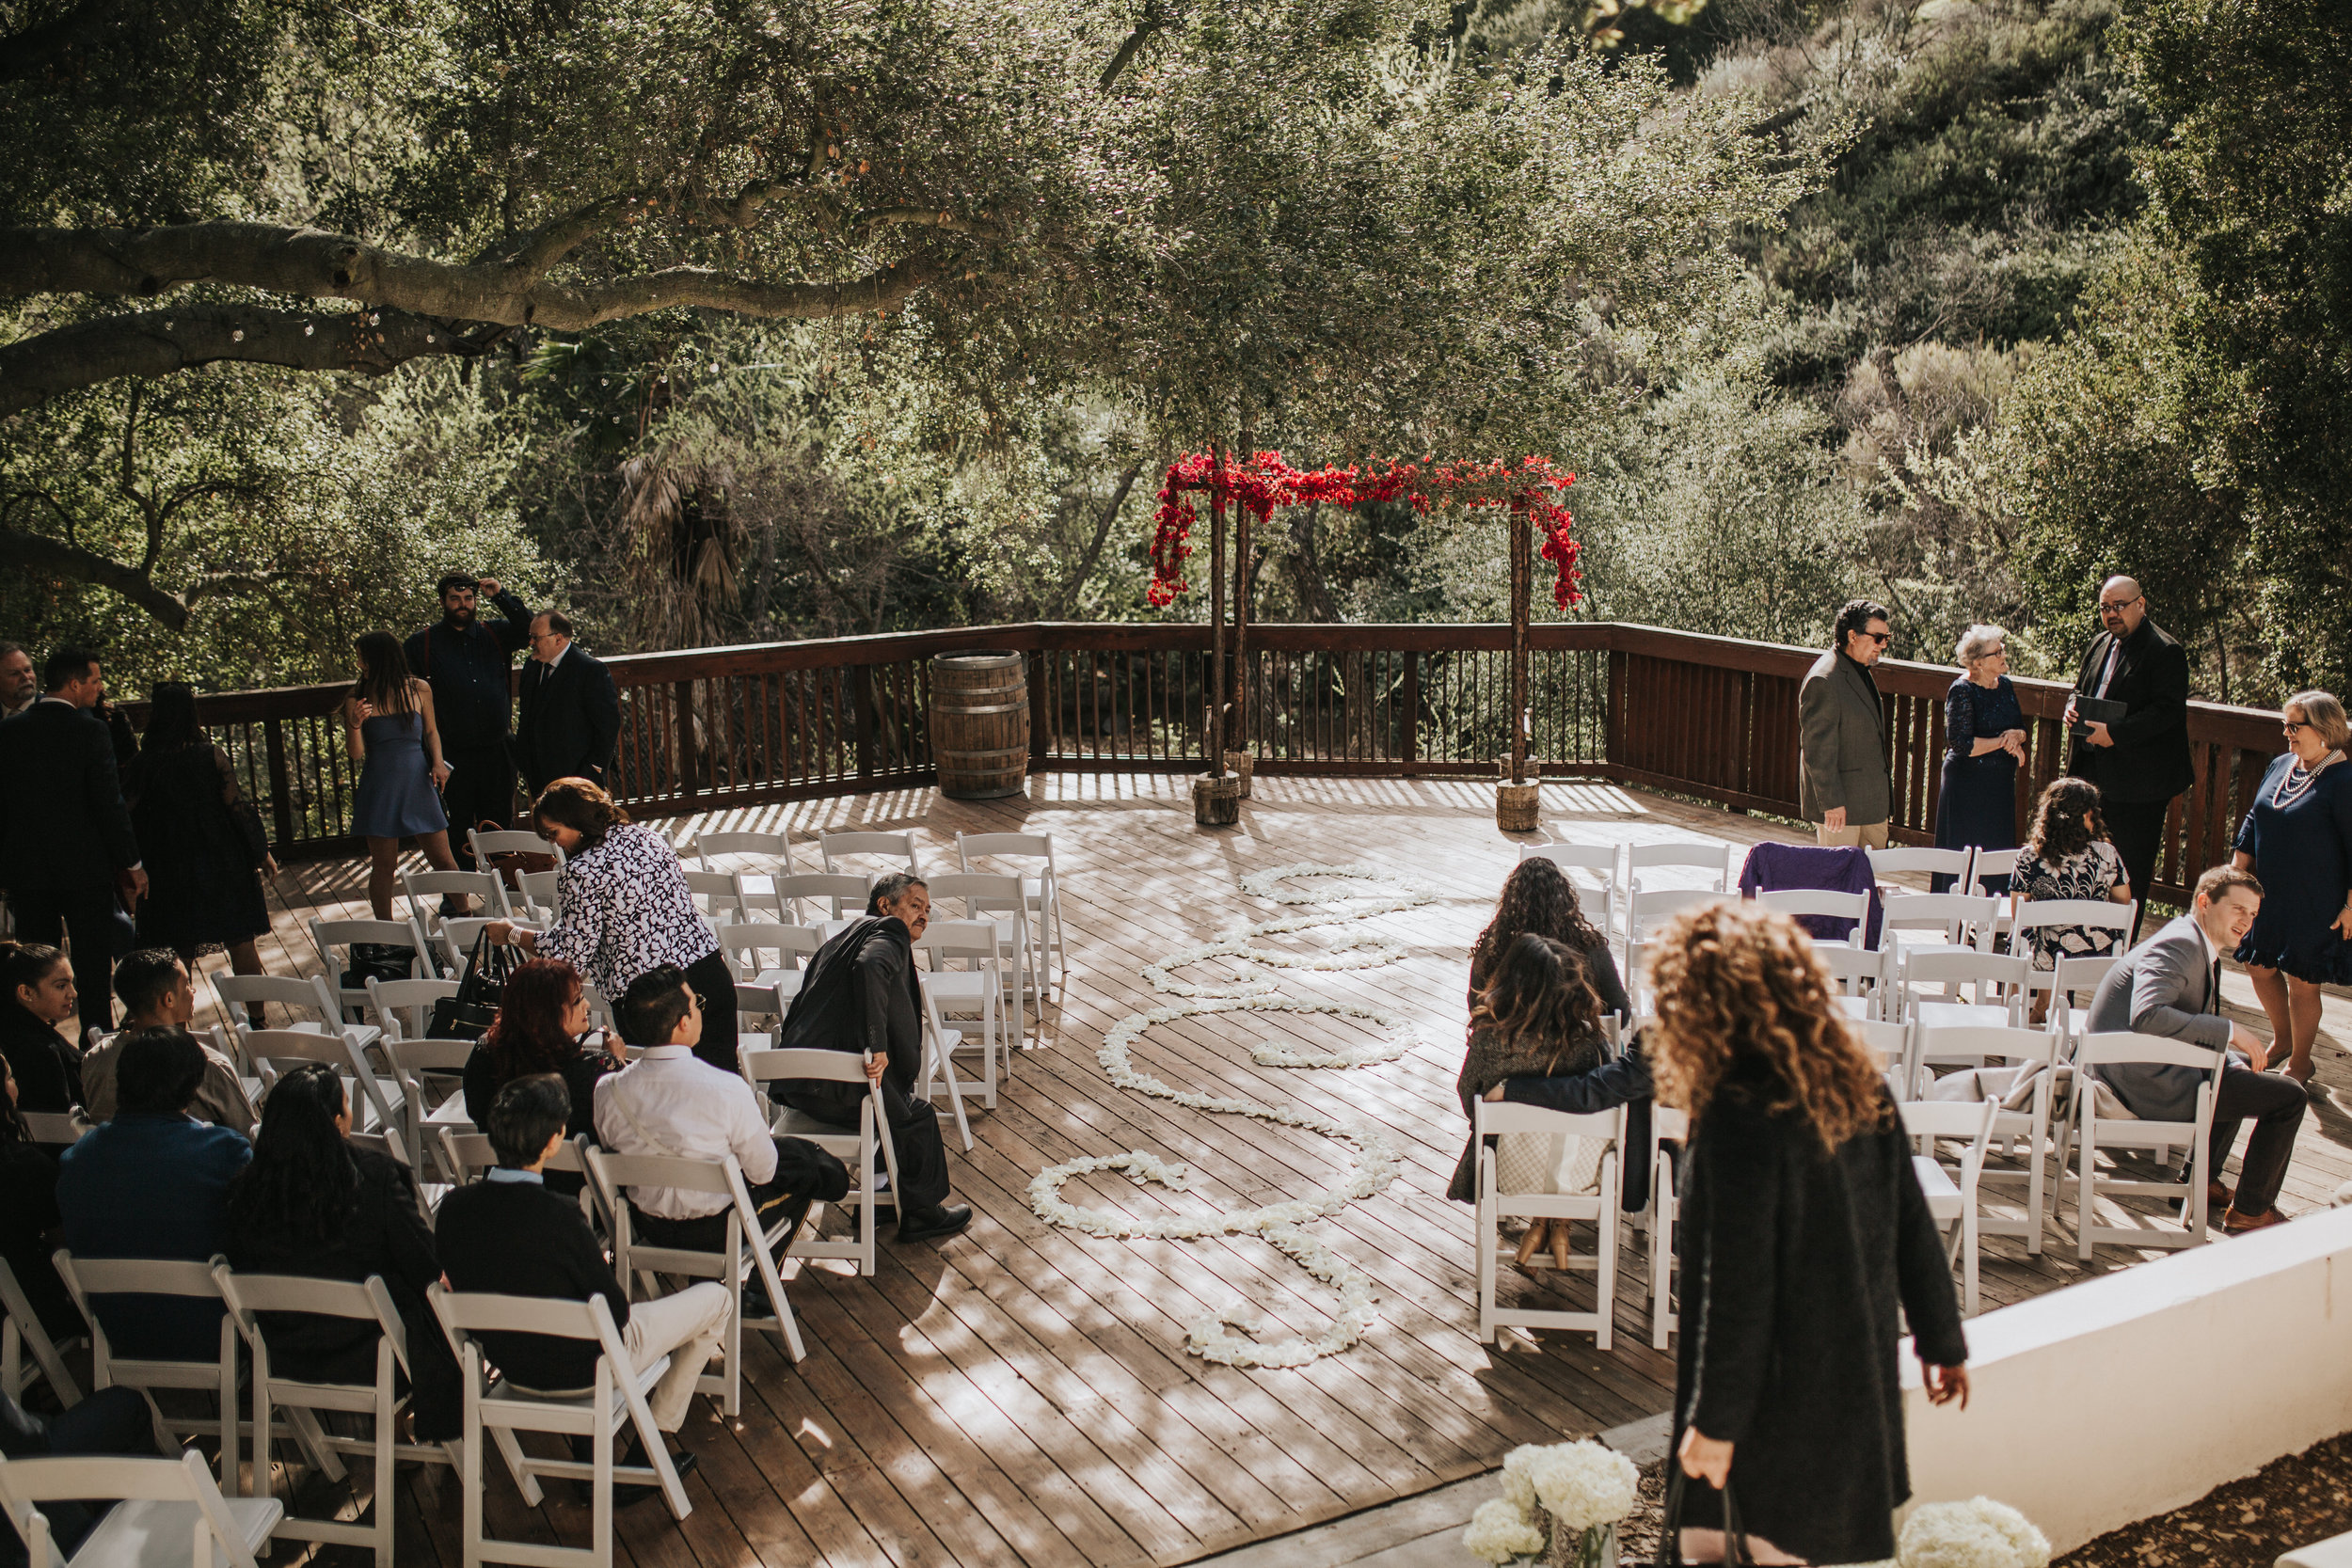 The 1909, The 1909 Wedding, Topanga Canyon Wedding, pink bougainvillea arch, white rose petal aisle design, rose petal design